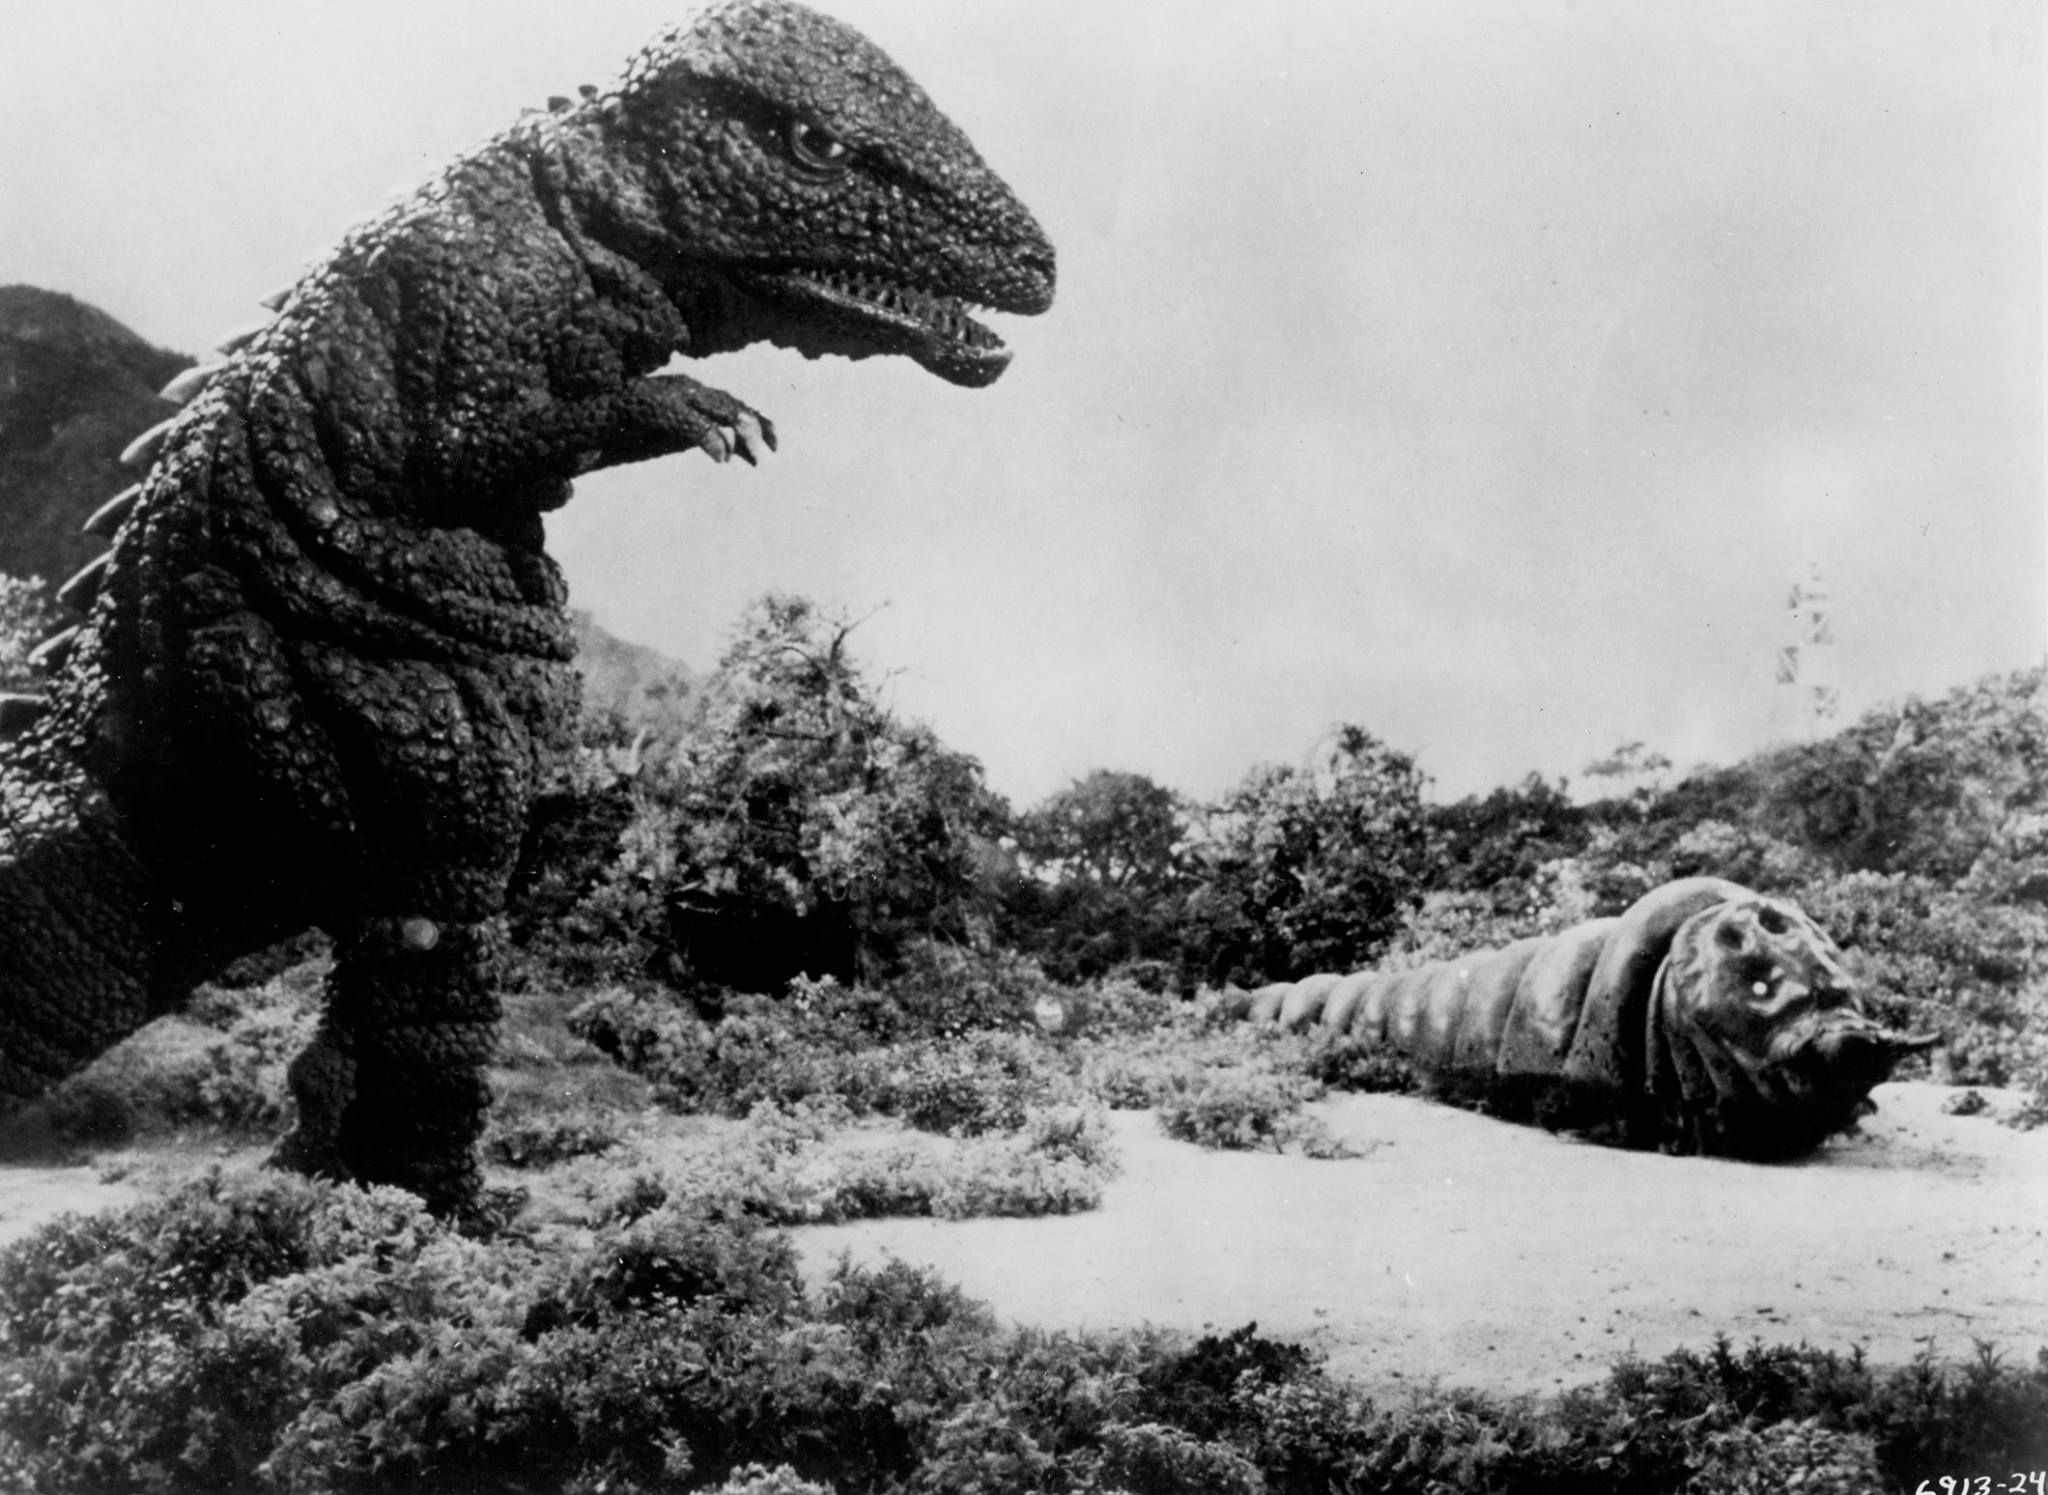 Res: 2048x1495, Gorosaurus and Mothra from DESTROY ALL MONSTERS (1968)